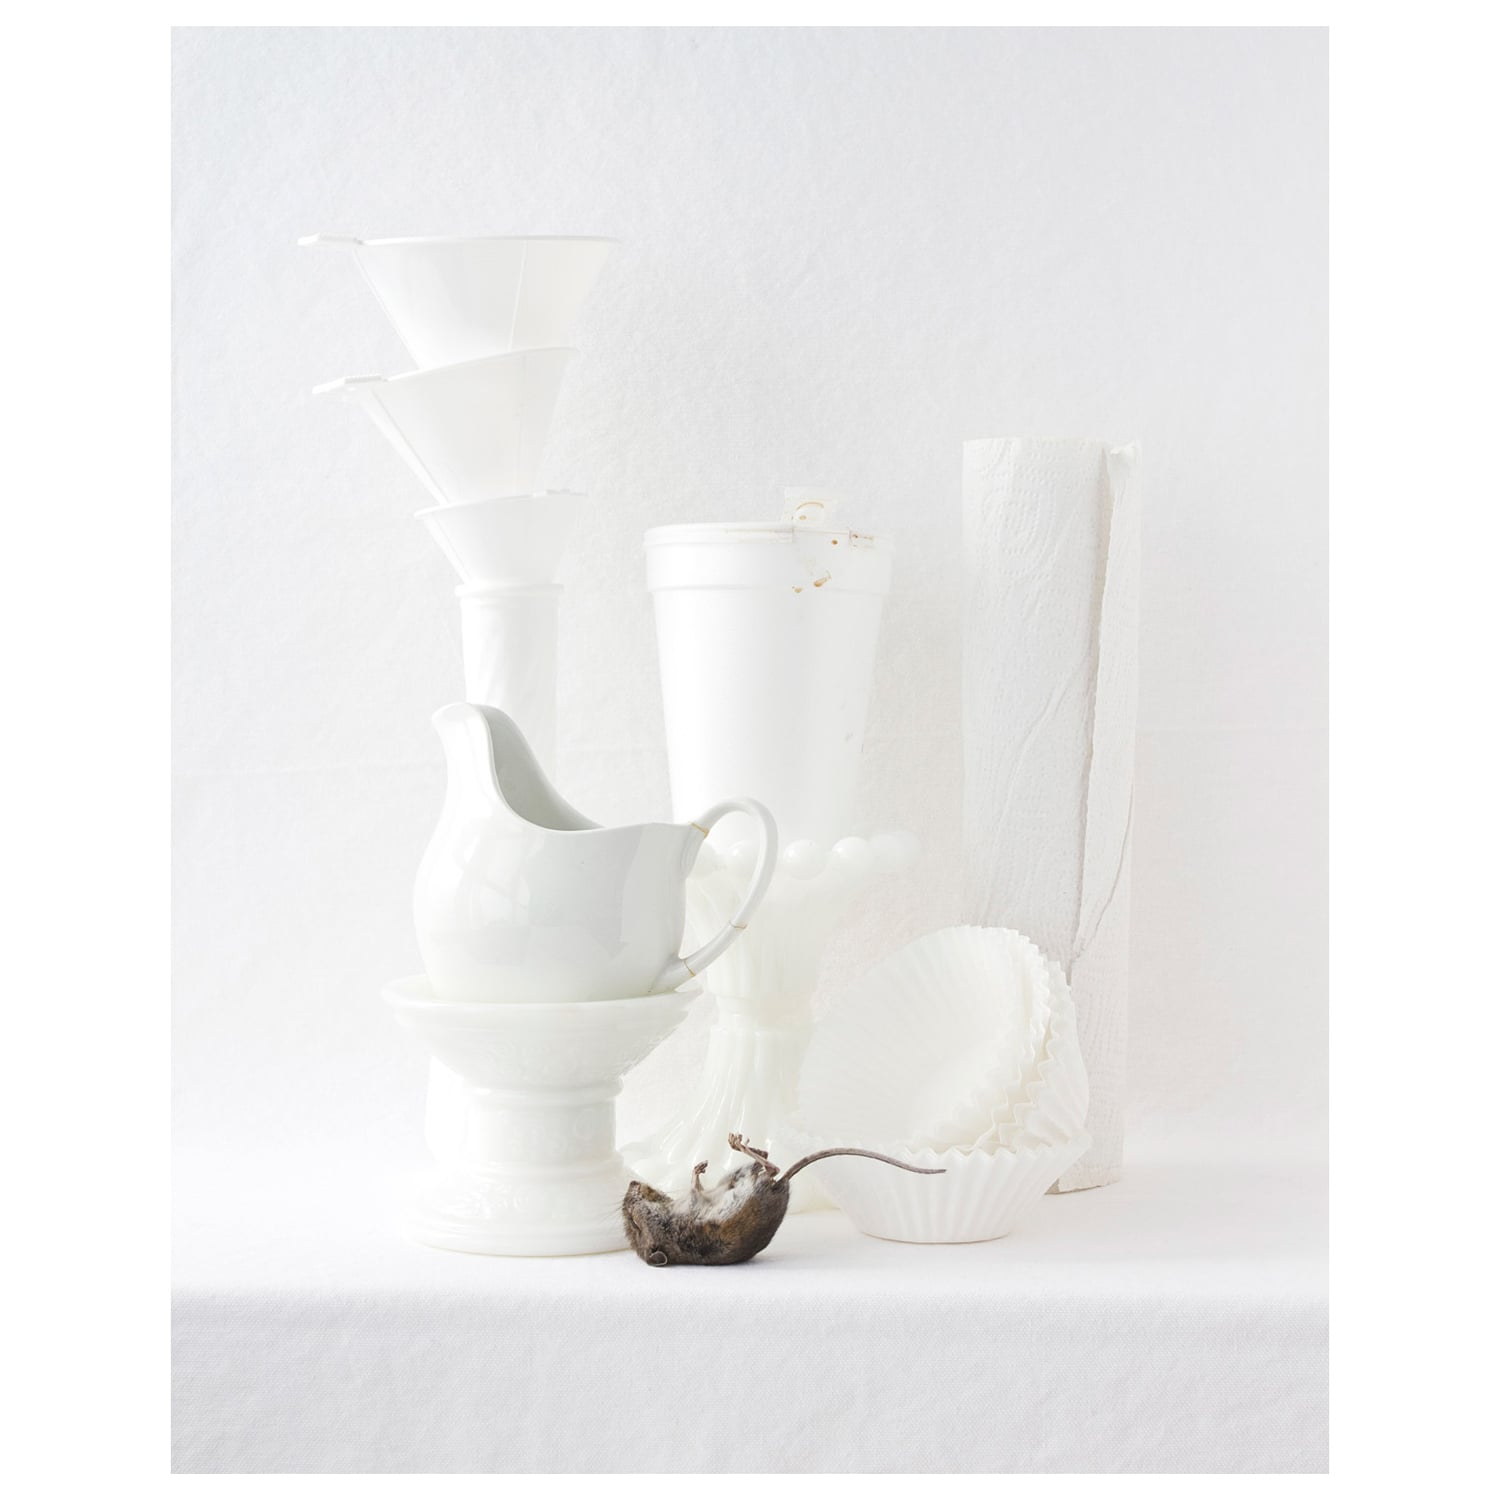 Still Life with Mouse  2011 Archival Pigment Print on rag paper 10 x 8 inch image on 11 x 8.5 inch paper edition of 10